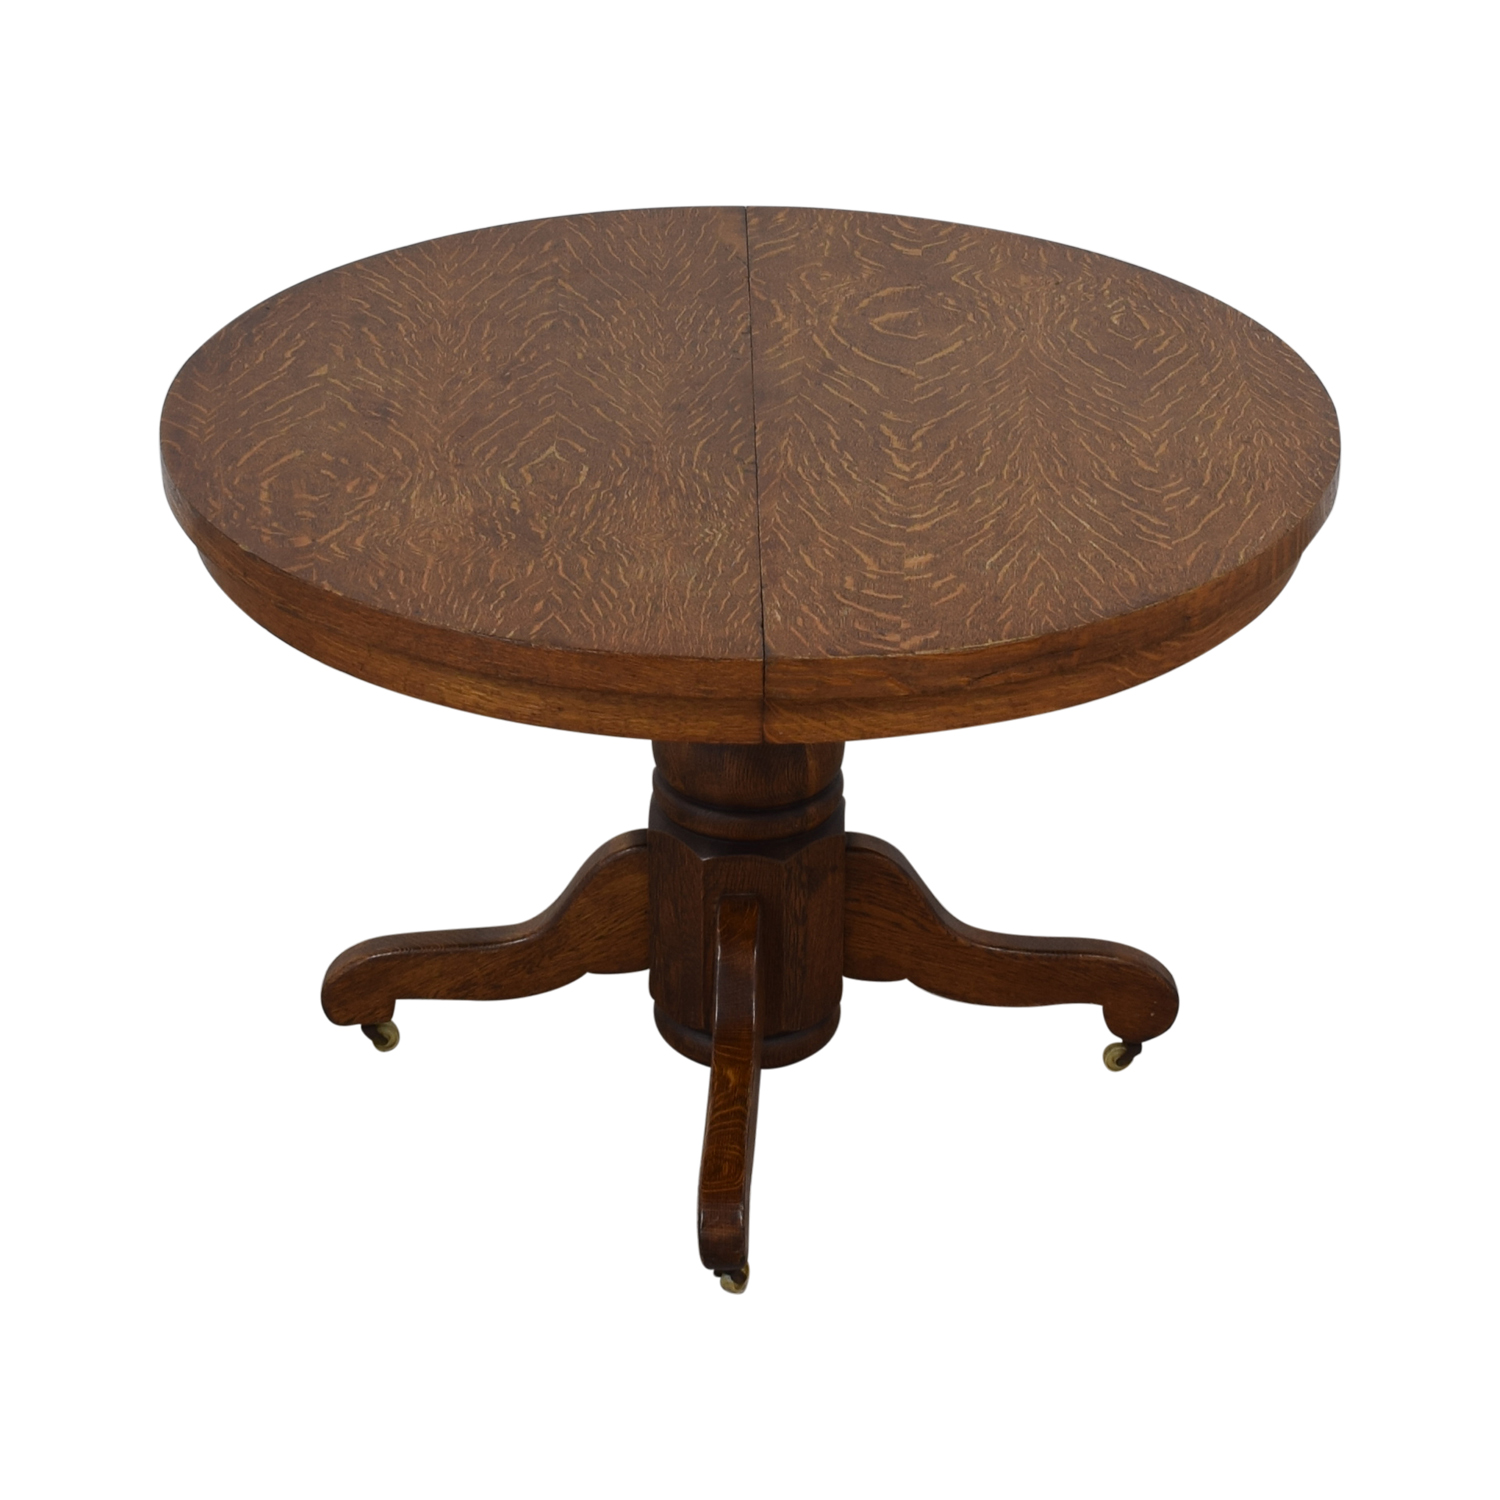 Antique Round Dining Table Online